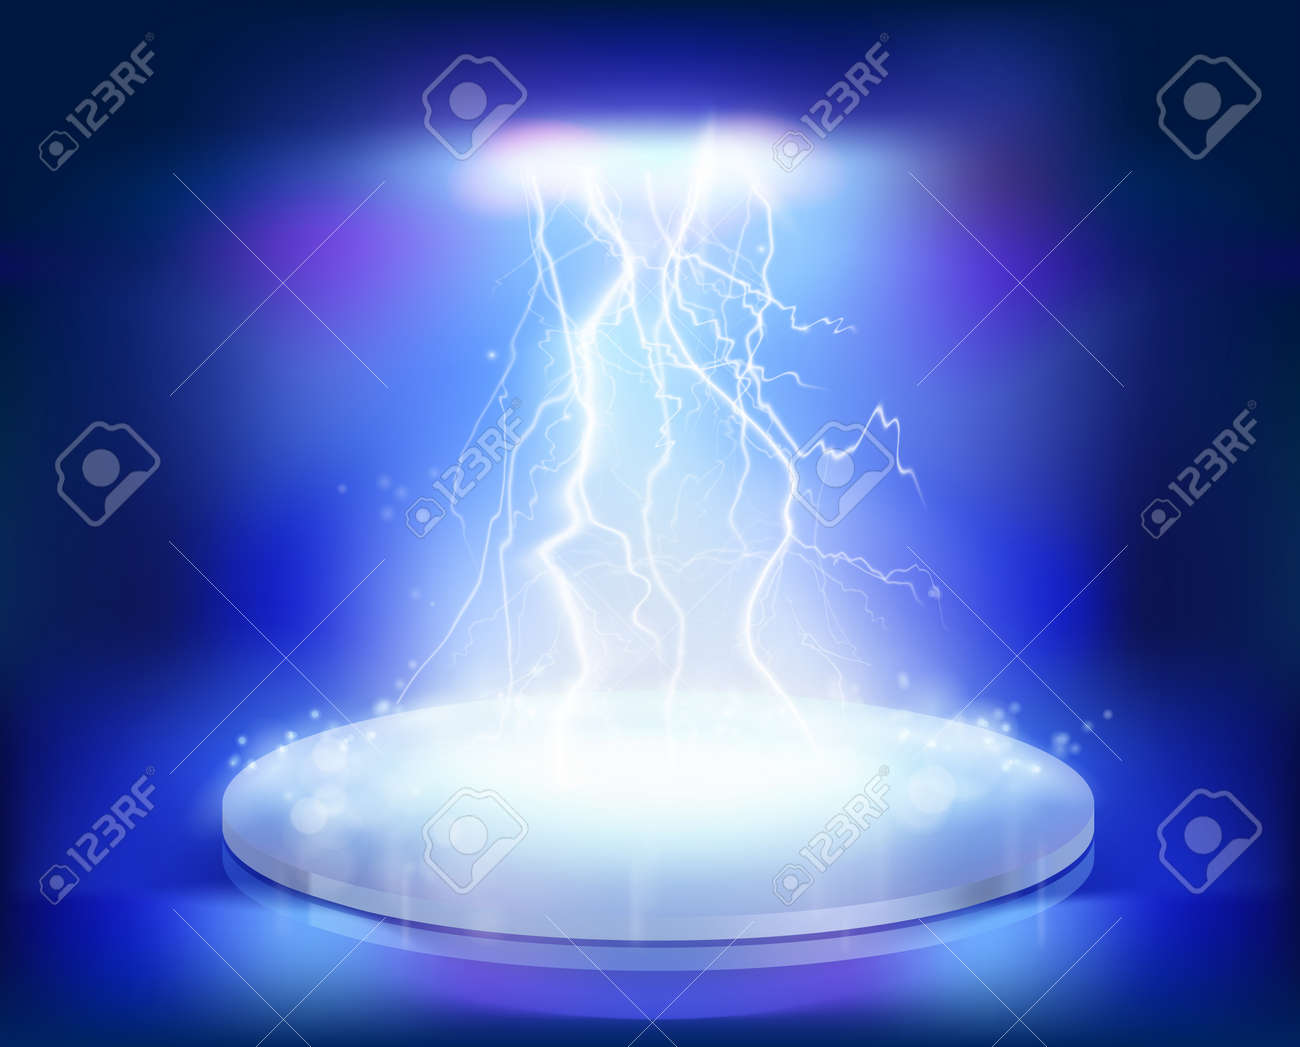 Electrical explosion on the stage. Vector illustration. - 37399741